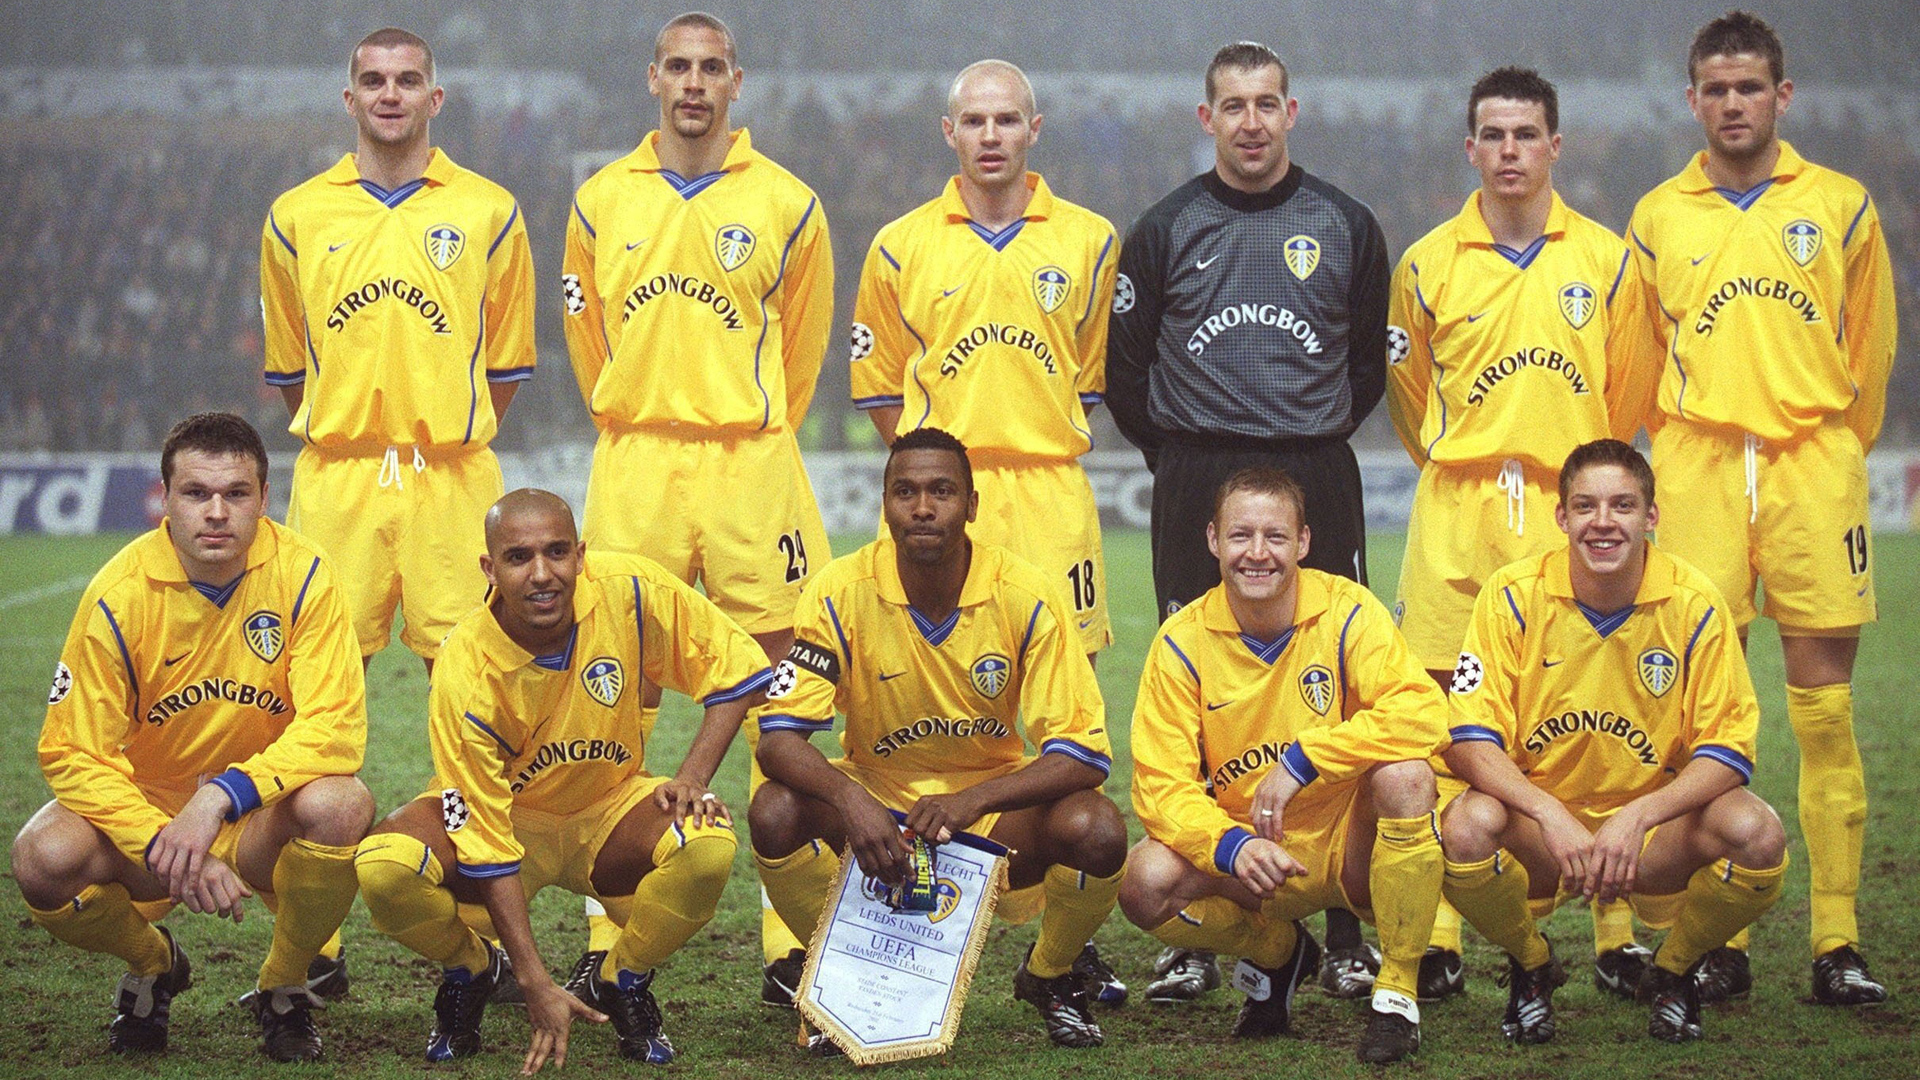 Leeds United 2000/2001 Team